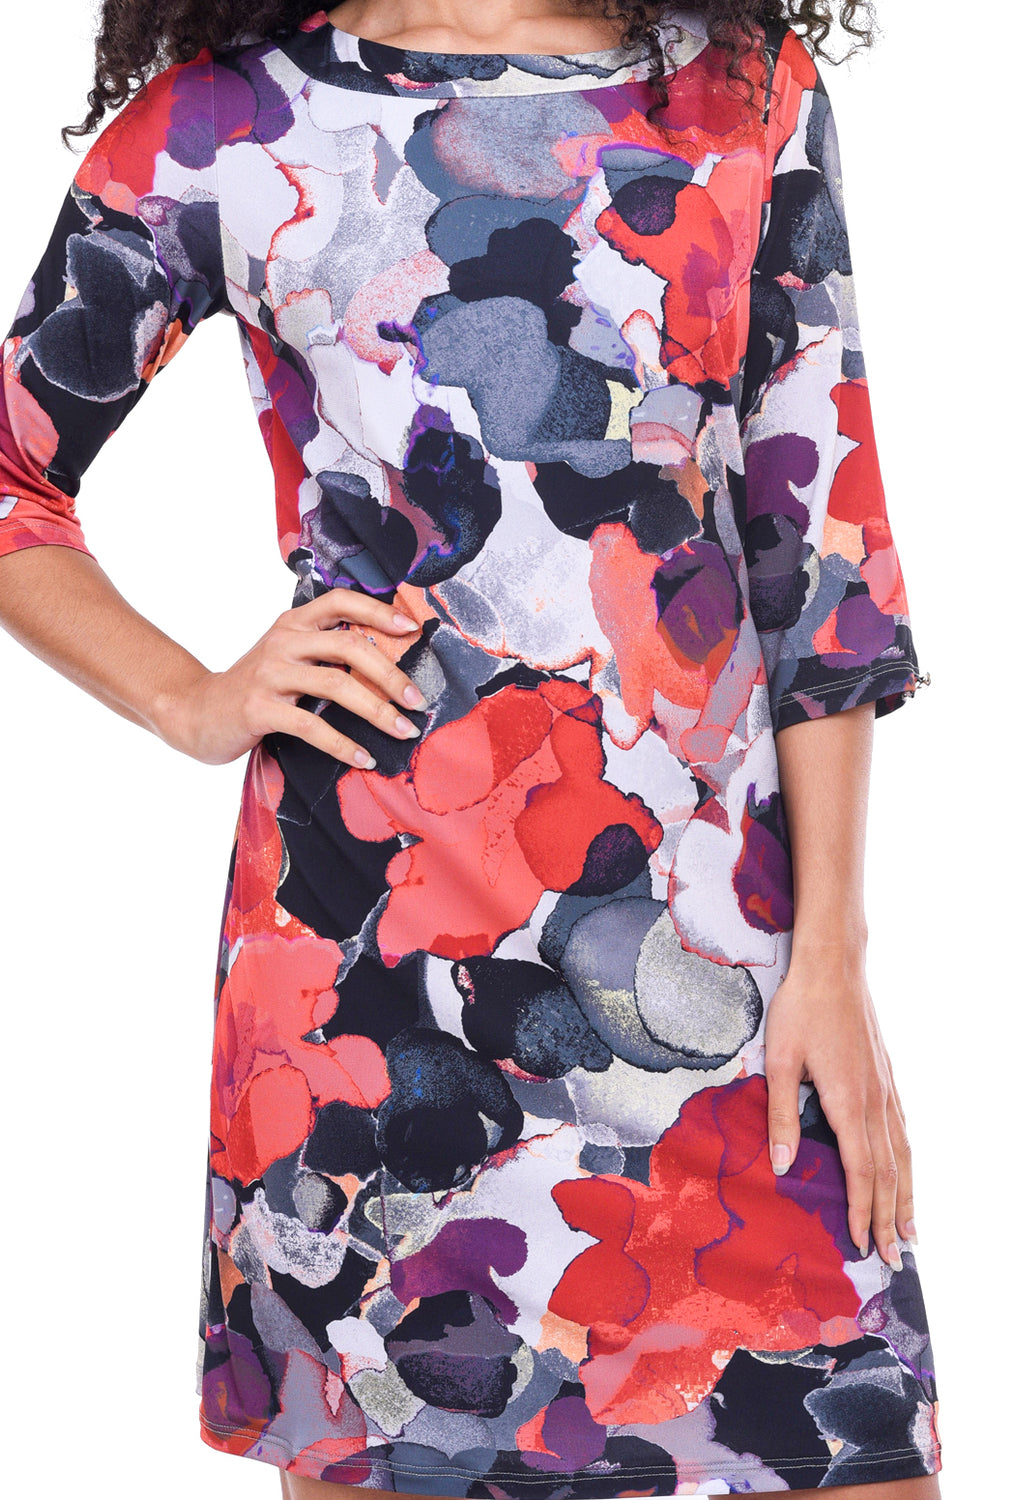 Papillon Blanc Floral Shift Dress, Red